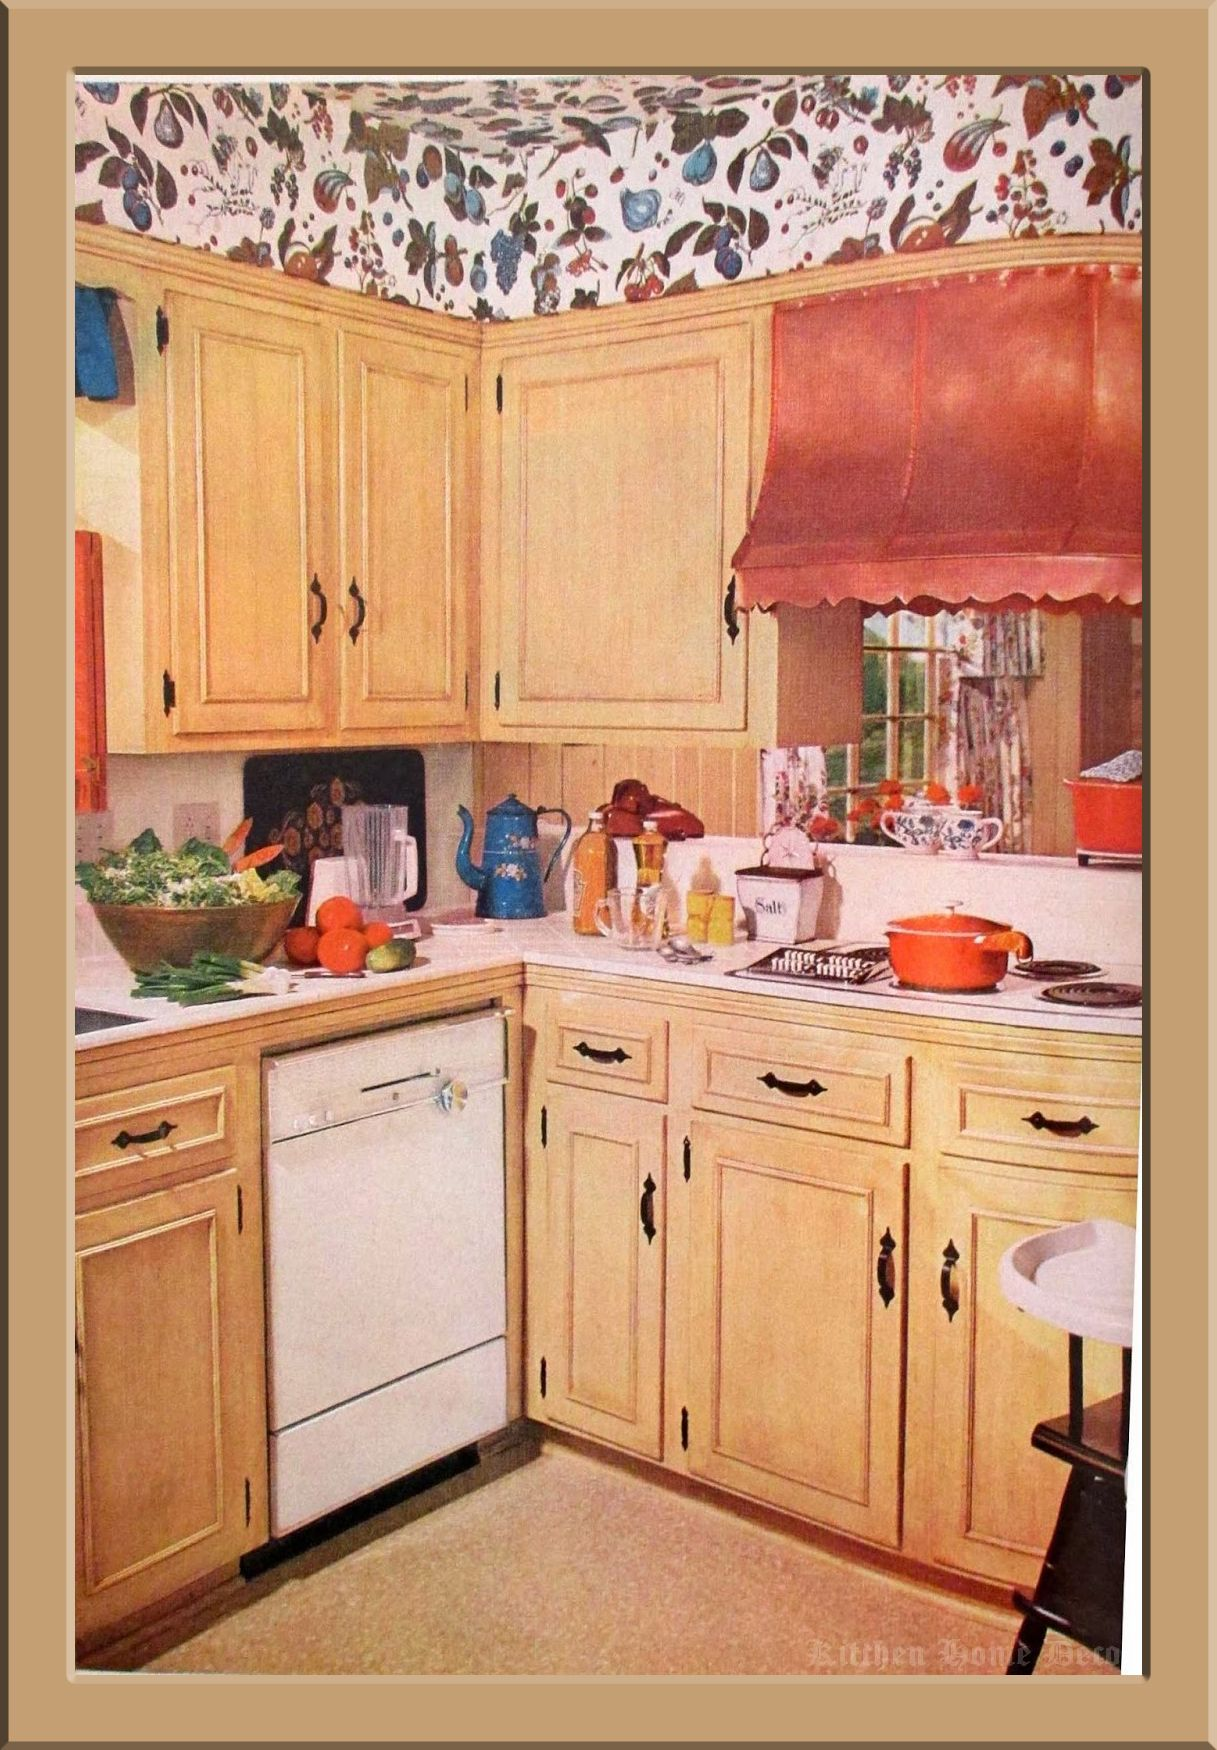 Successful Stories You Didn't Know About Kitchen Decor